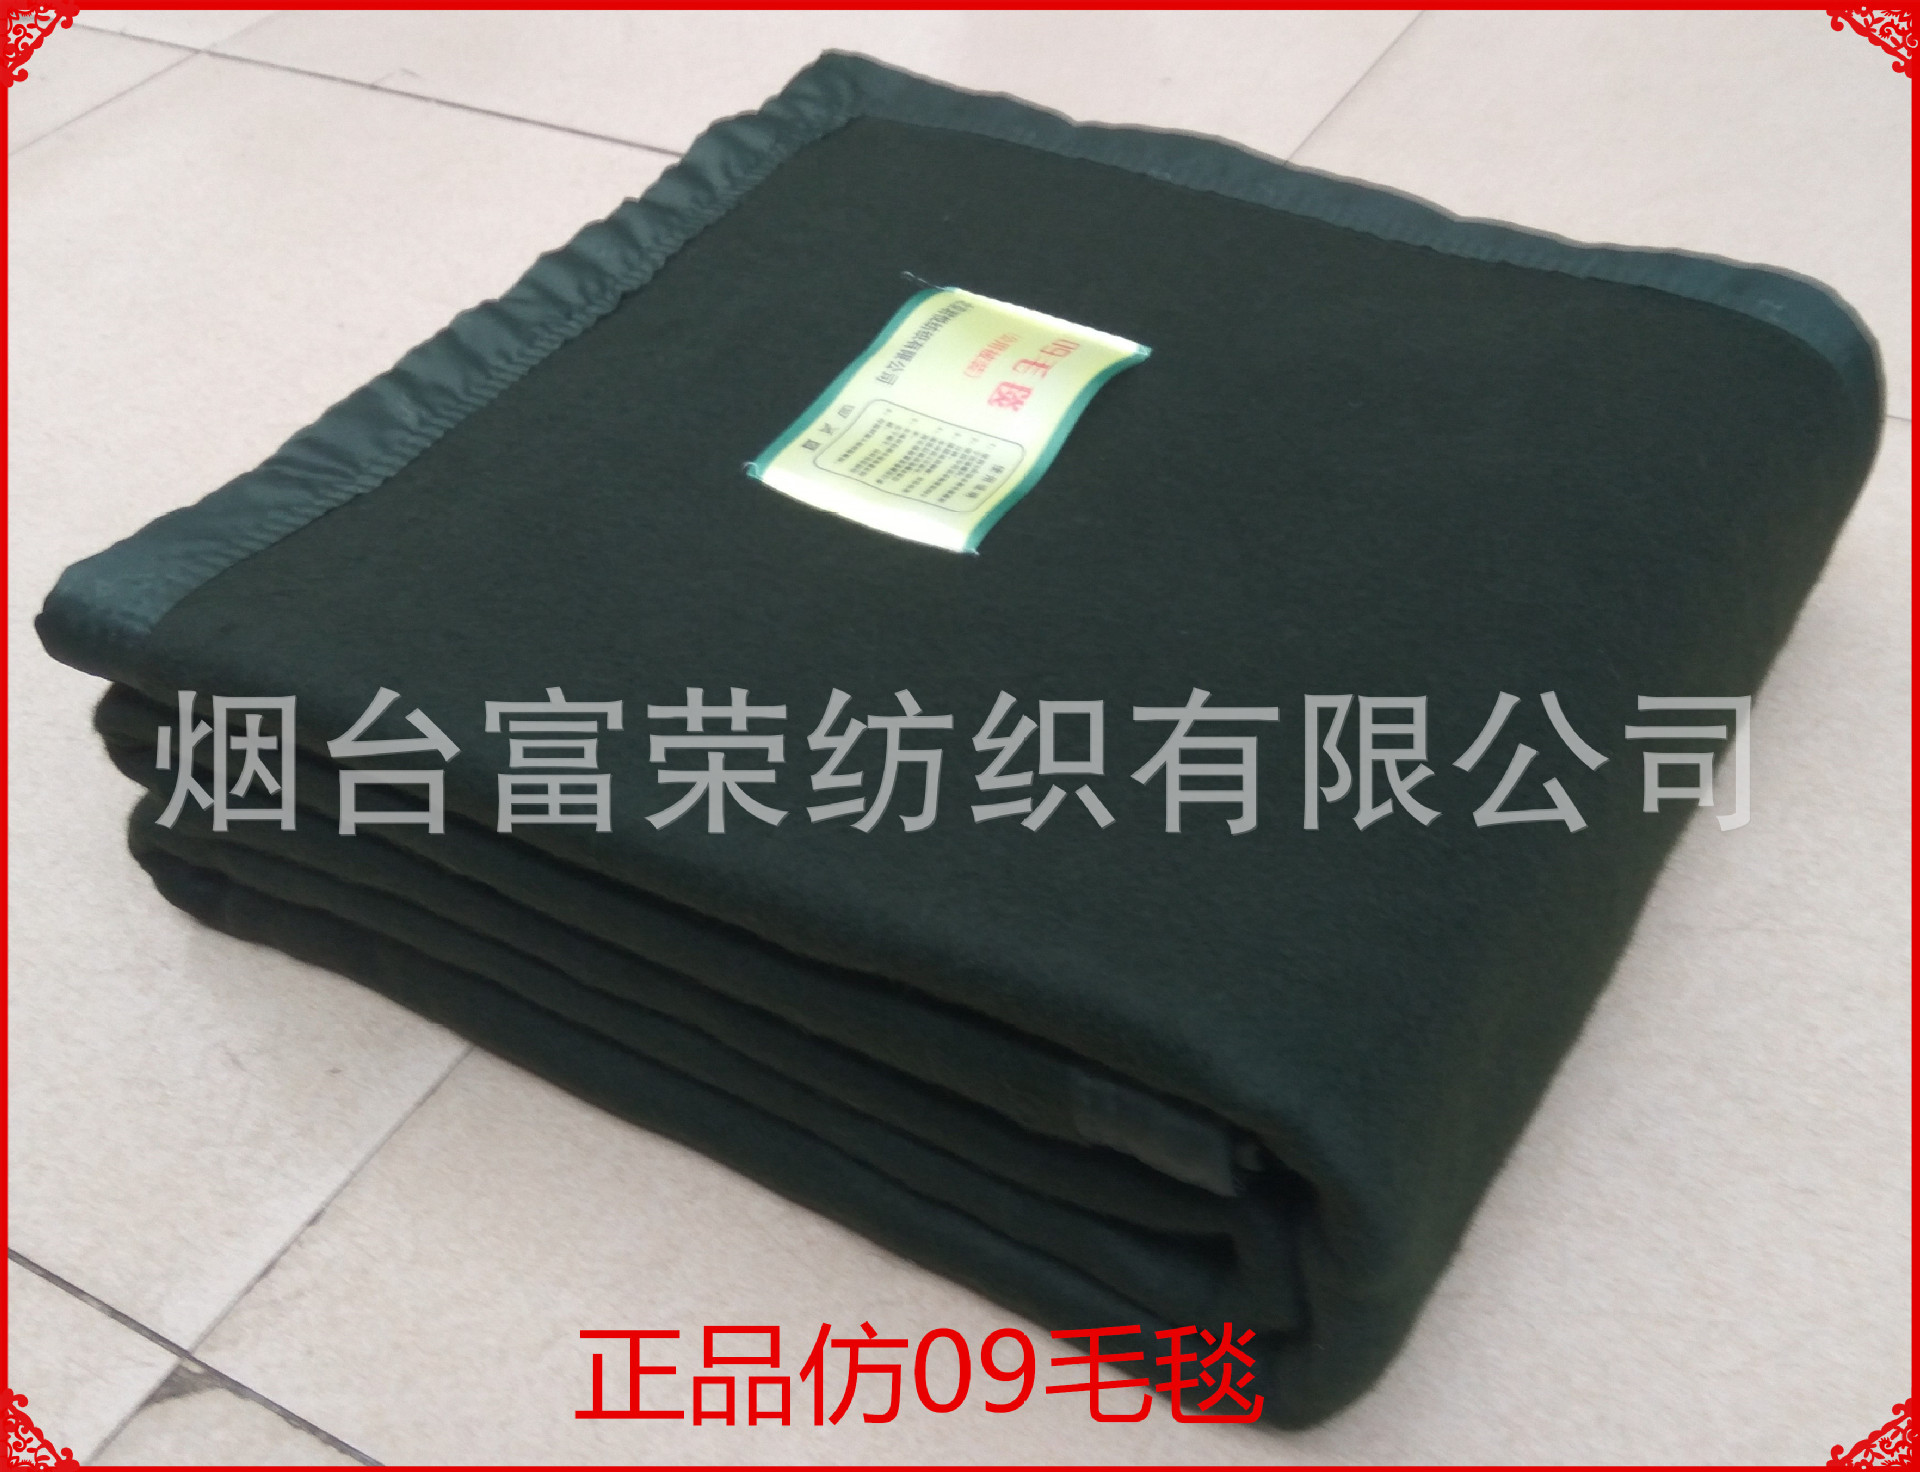 Deep Green Blanket for Students' Dorms